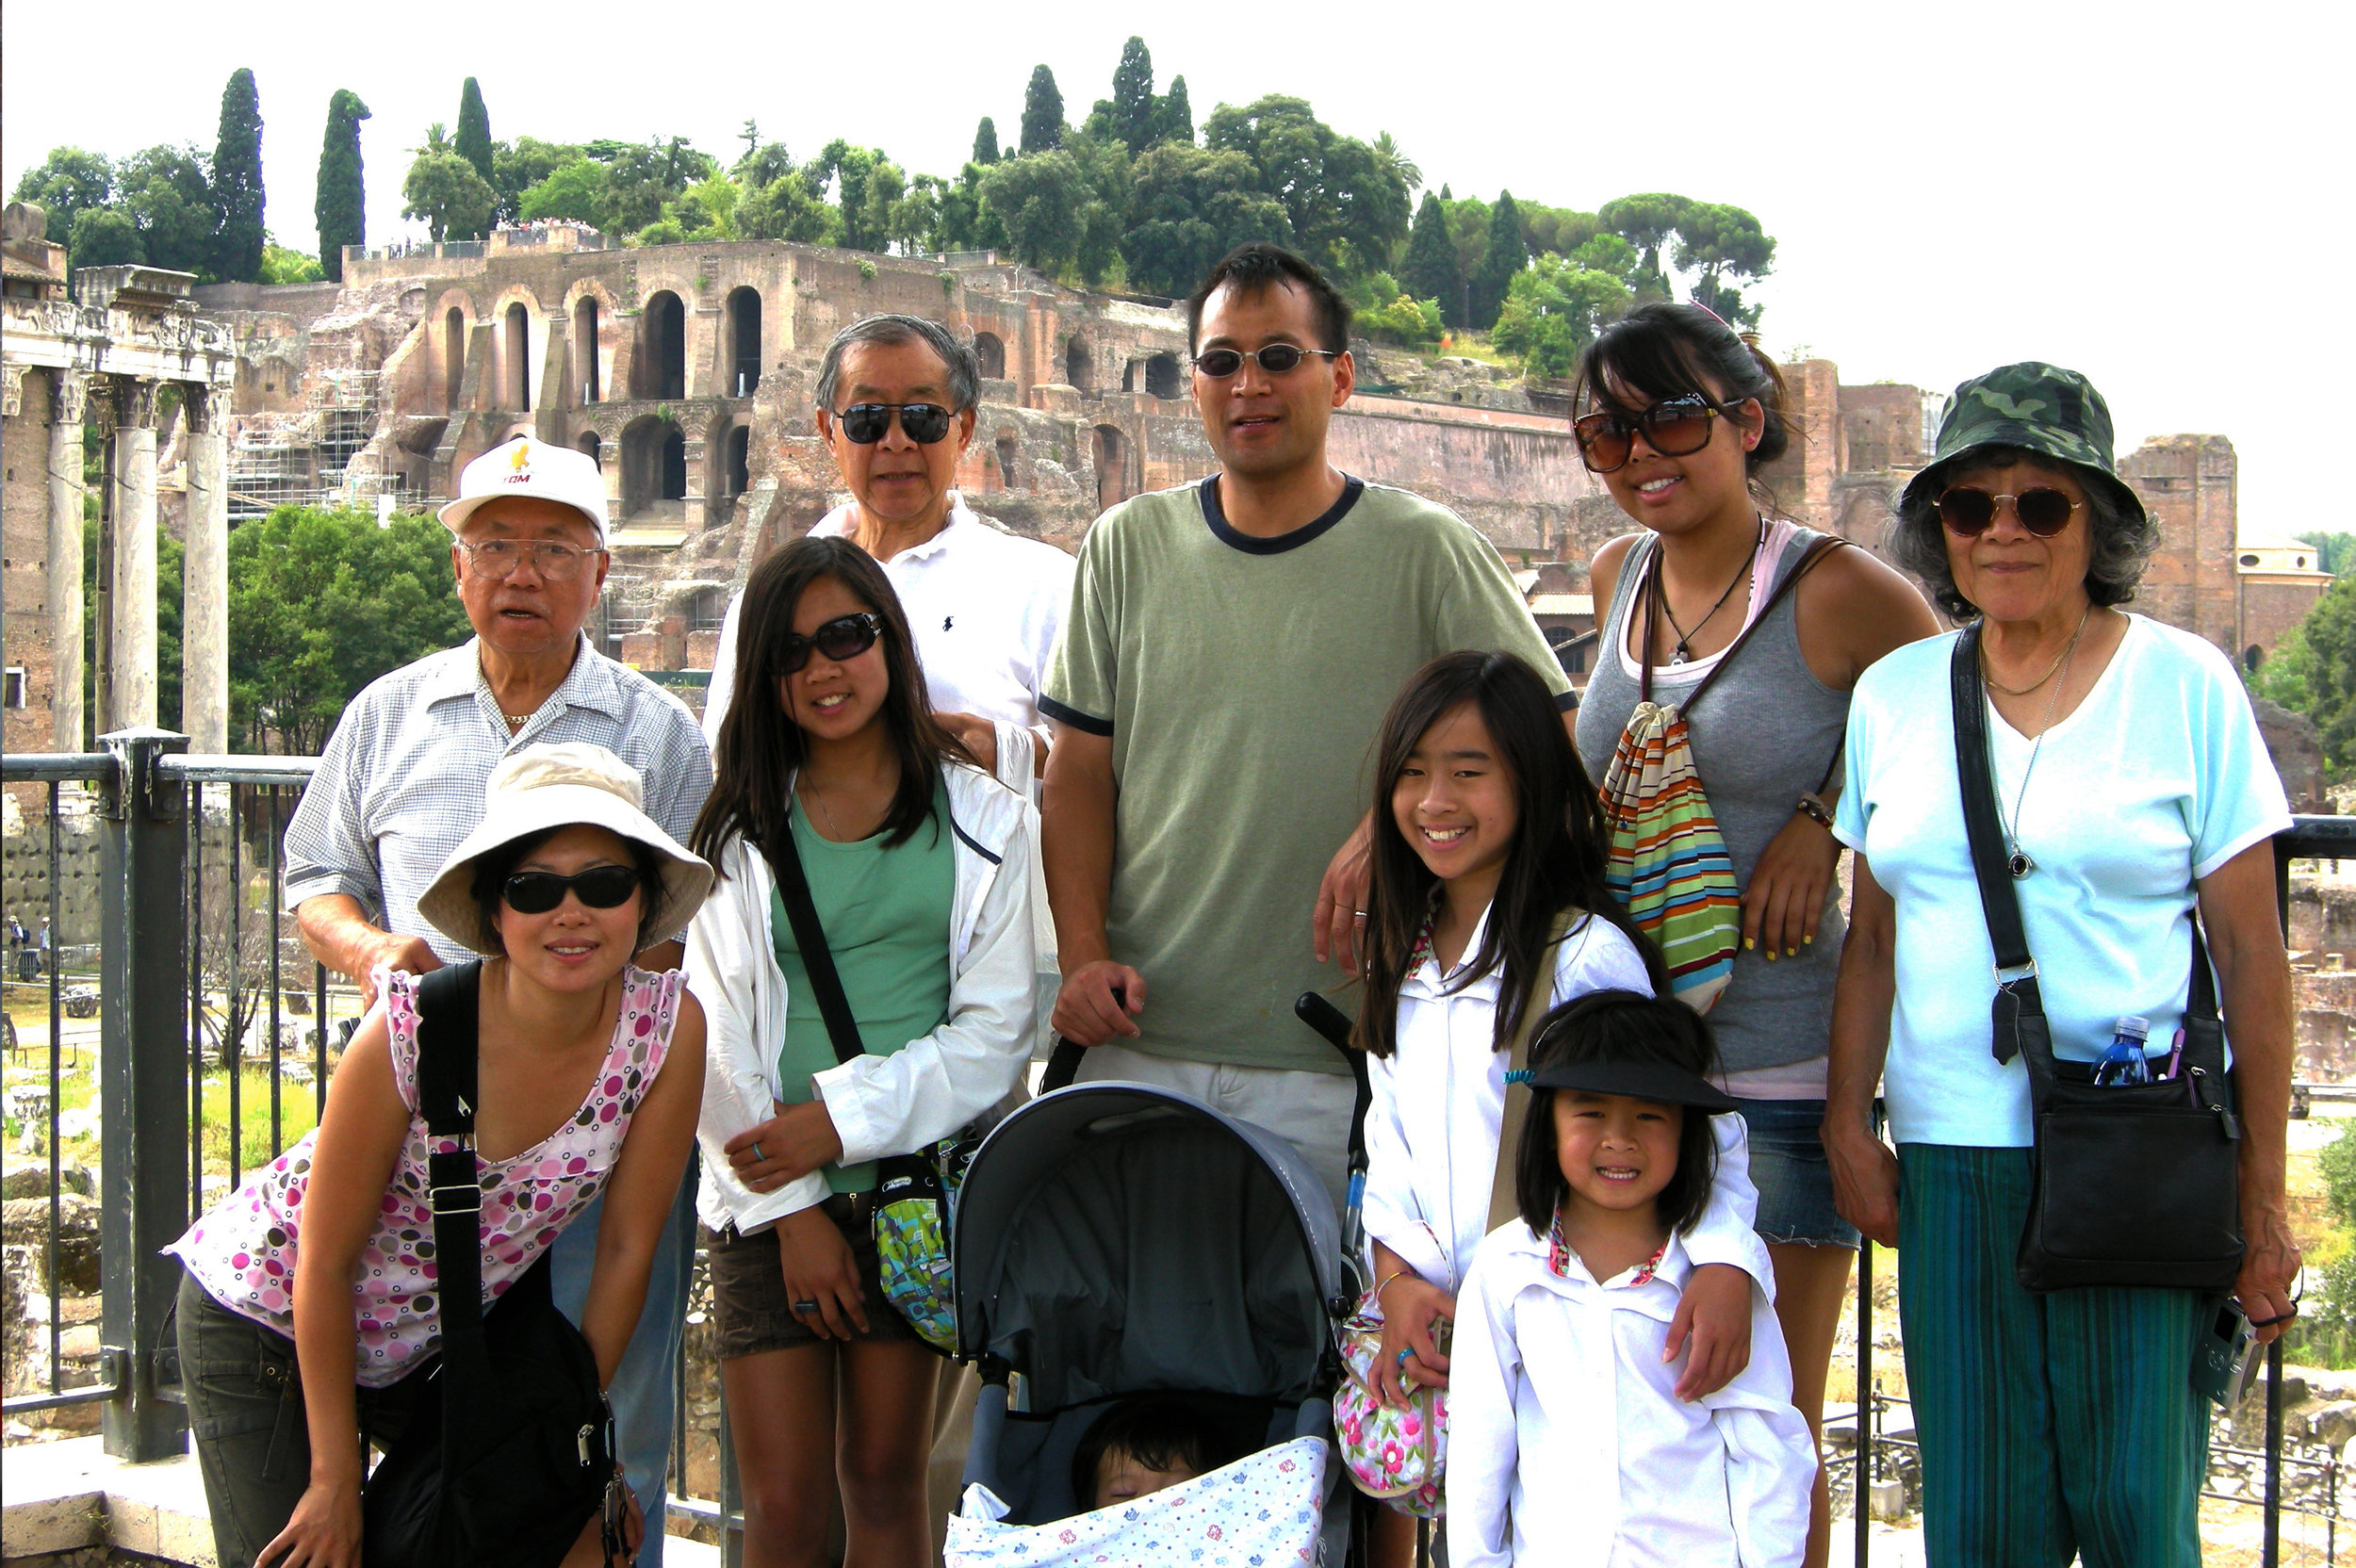 Pompeii, 2008, wearing the much-detested sun-protective shirts